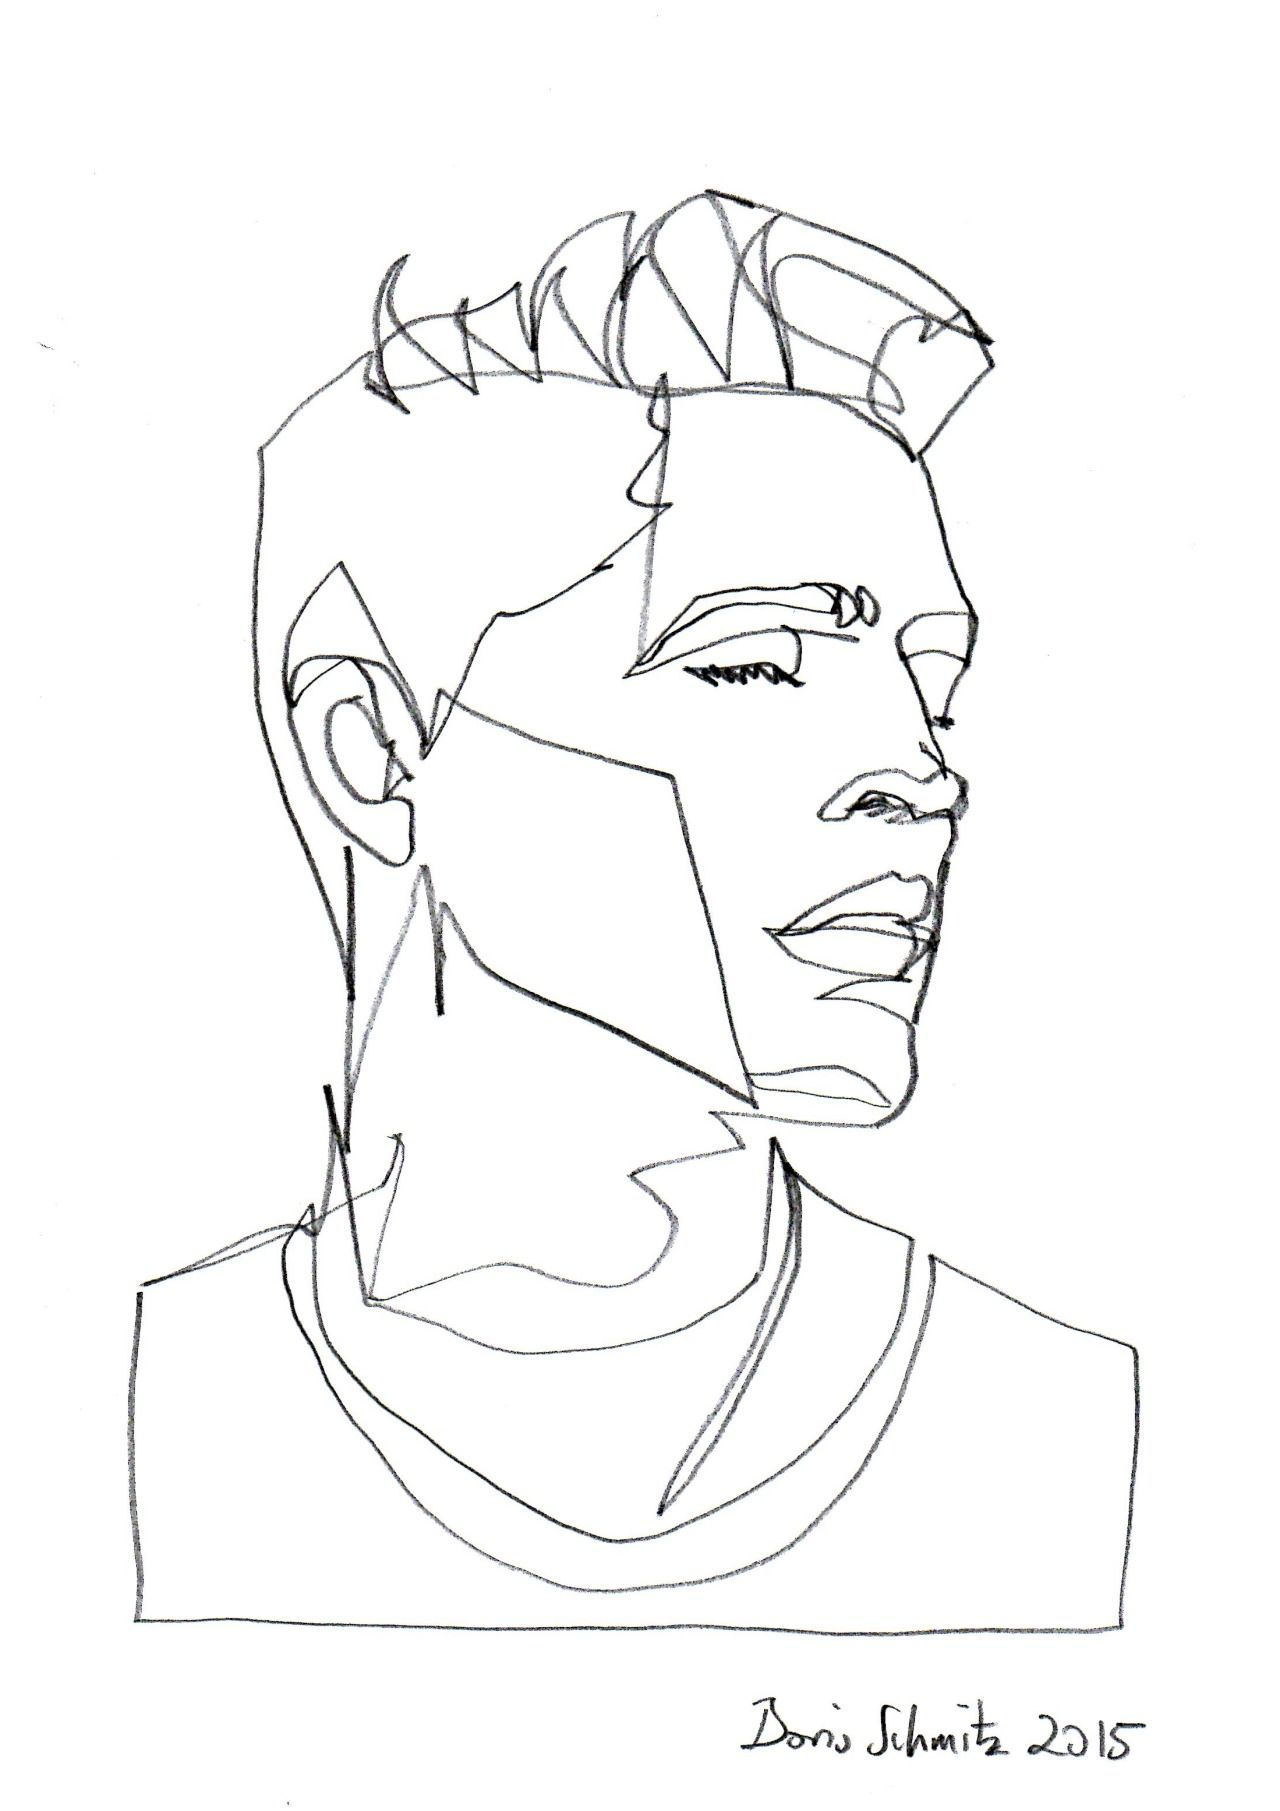 Simple Contour Line Drawing : Borisschmitz quot gaze one continuous line drawing by